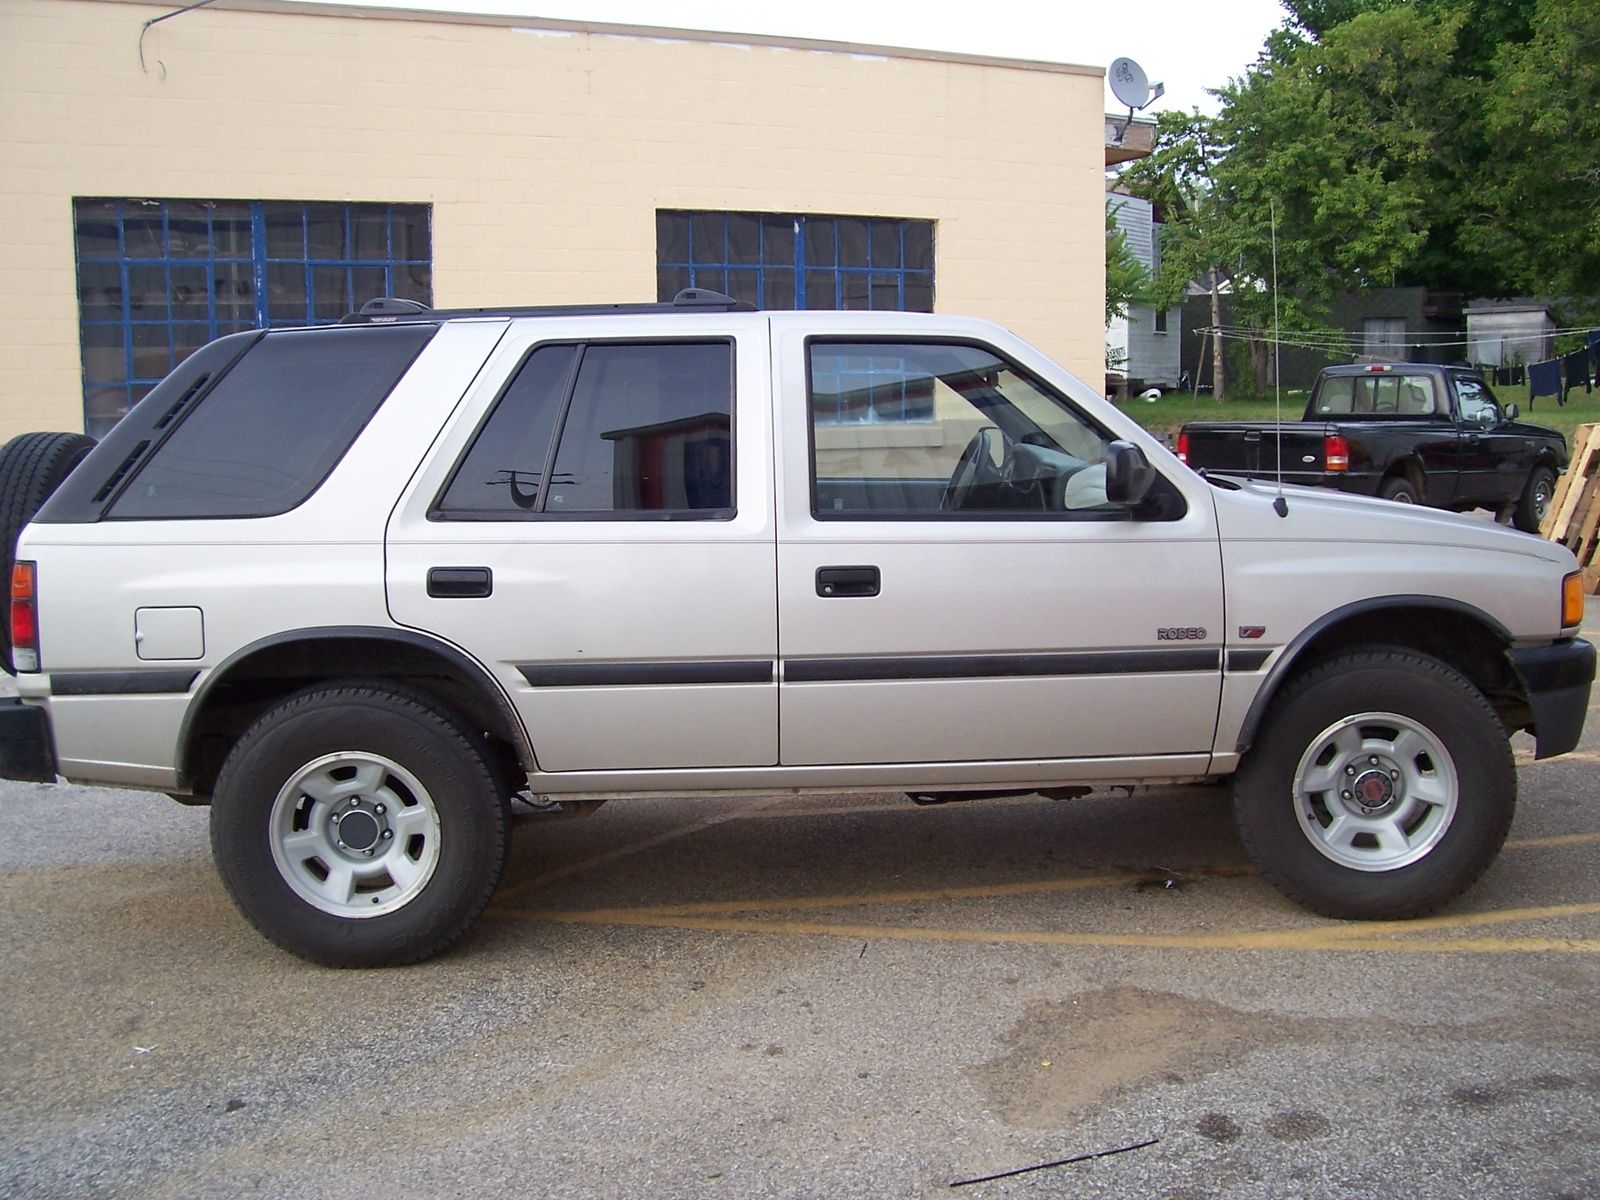 1995 Isuzu Rodeo Other Pictures Cargurus Rodeo New Trucks Japanese Cars